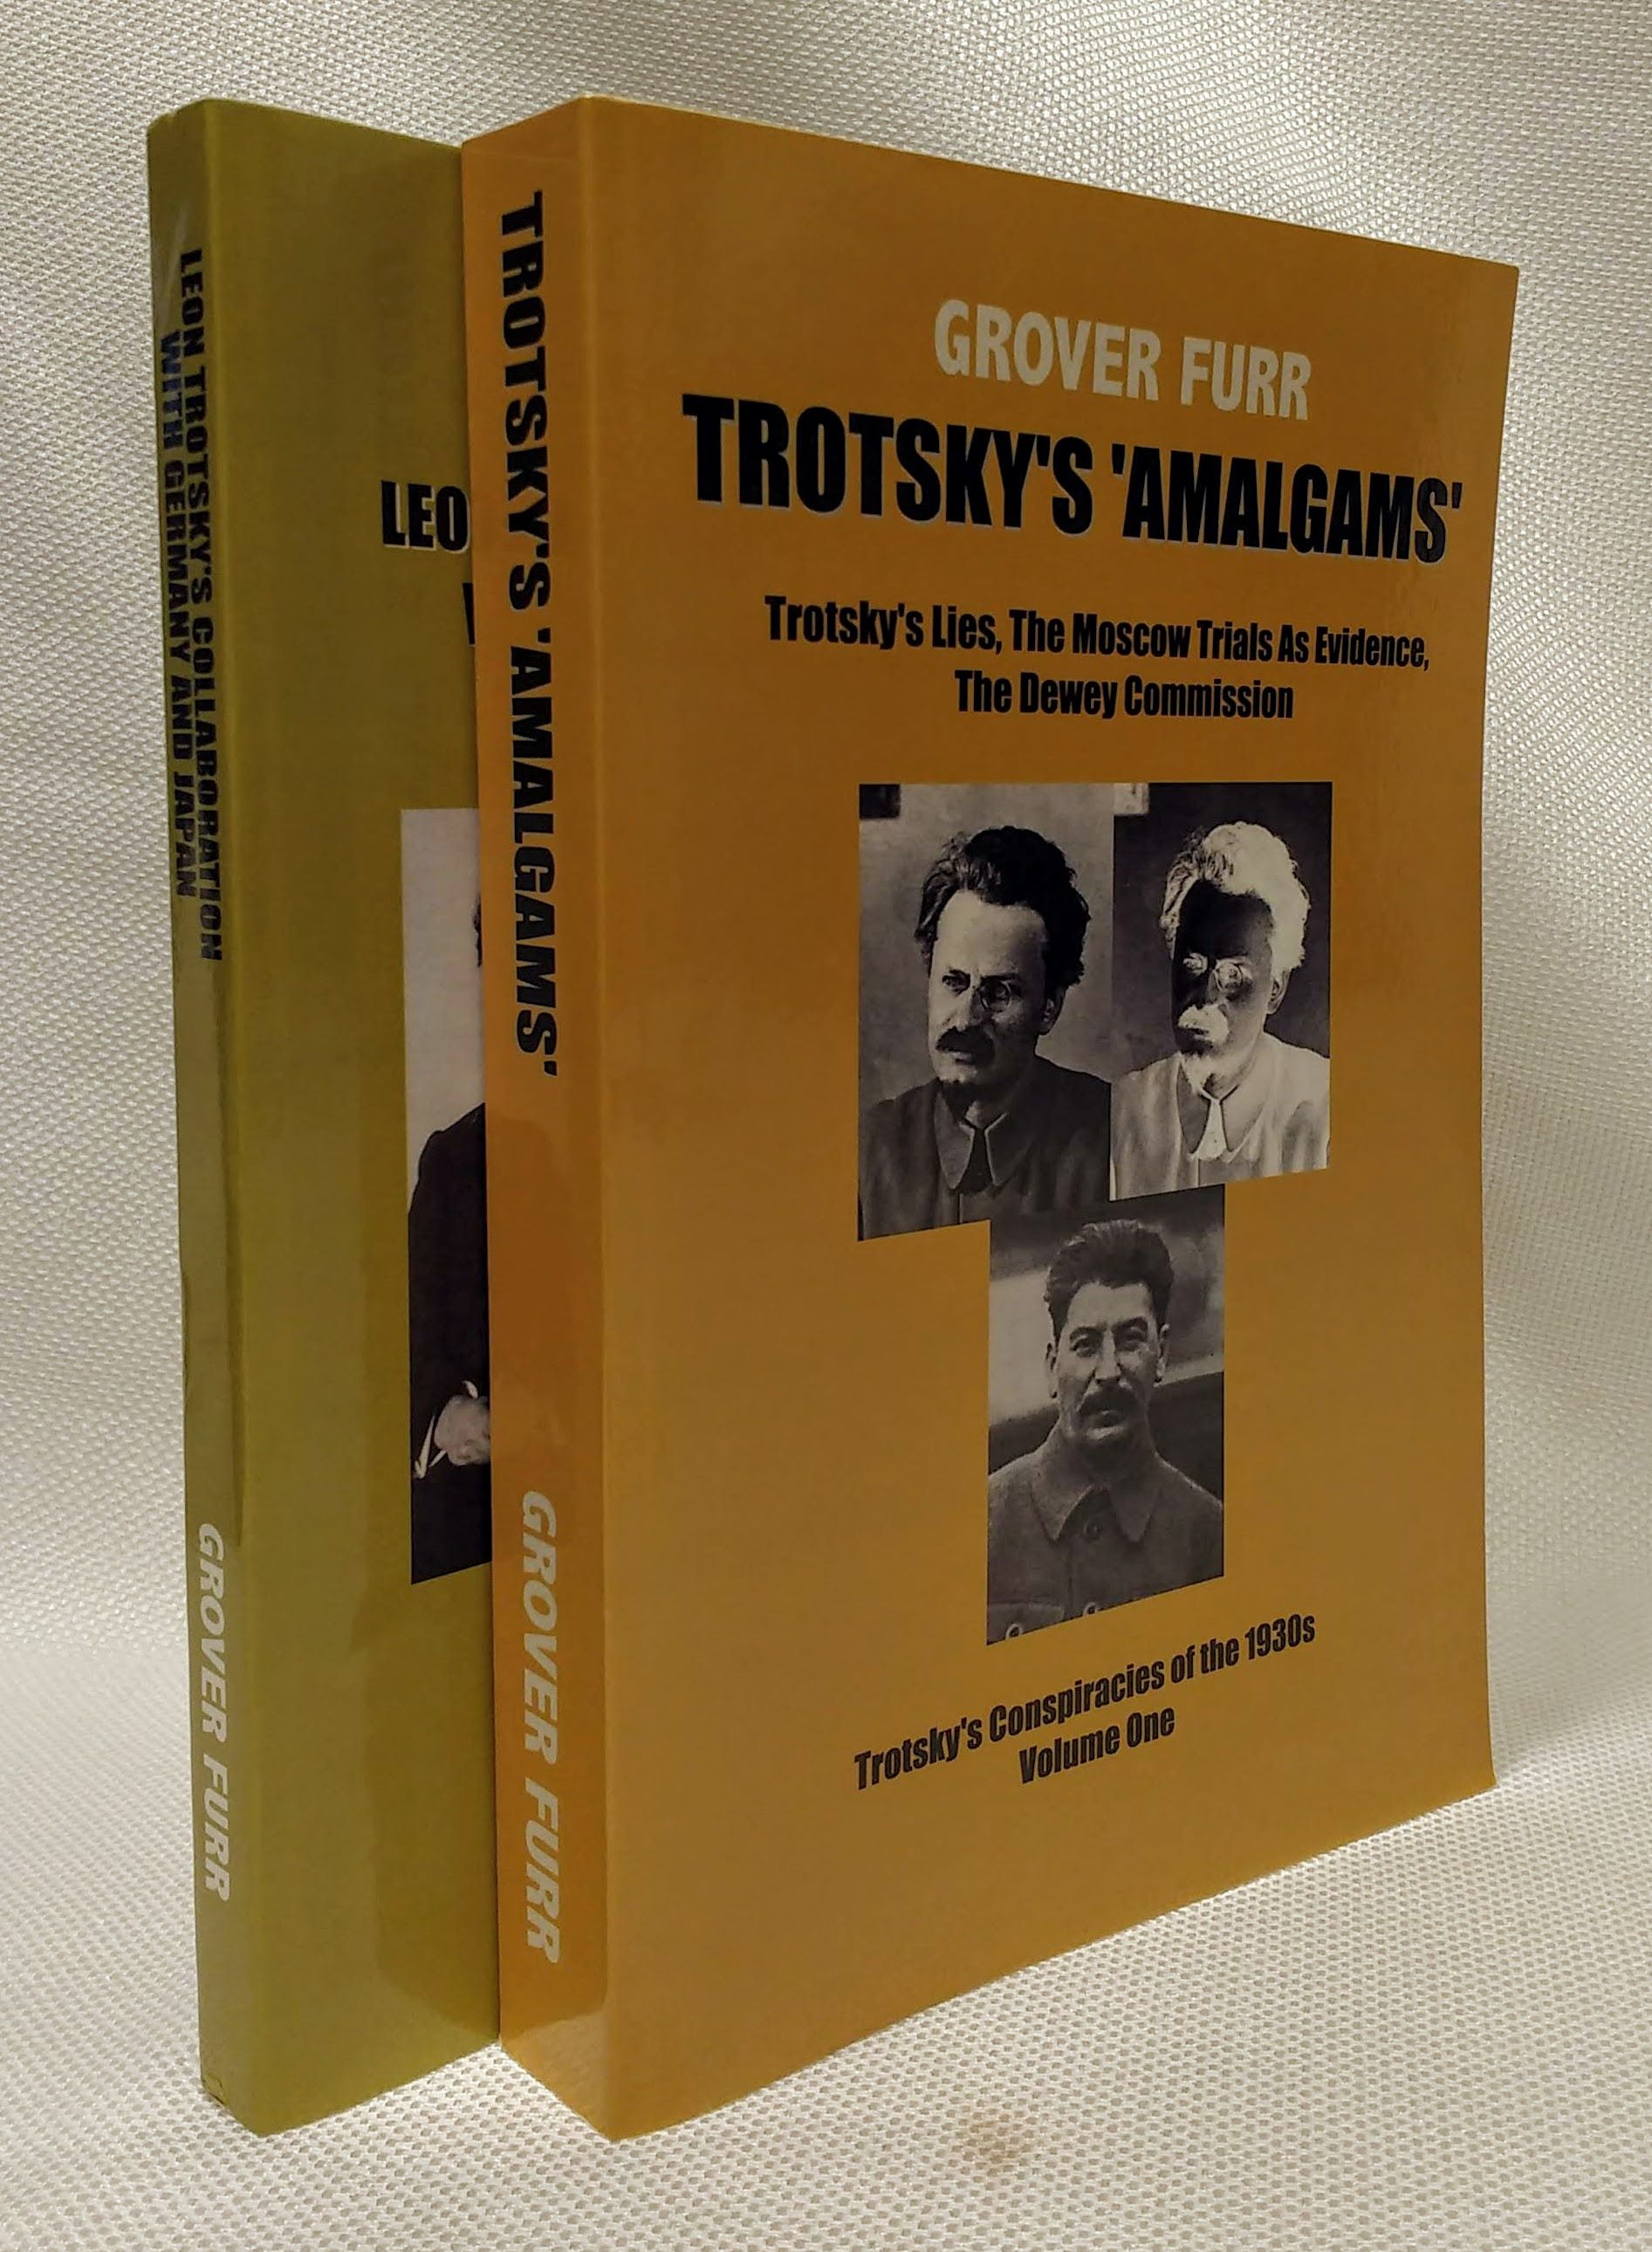 """Trotsky?s """"Amalgams"""": Trotsky's Lies, The Moscow Trials As Evidence, The Dewey Commission; Leon Trotsky's Collaboration with German and Japan  (Trotsky's Conspiracies of the 1930s, Volume One and Volume Two), Grover Furr"""